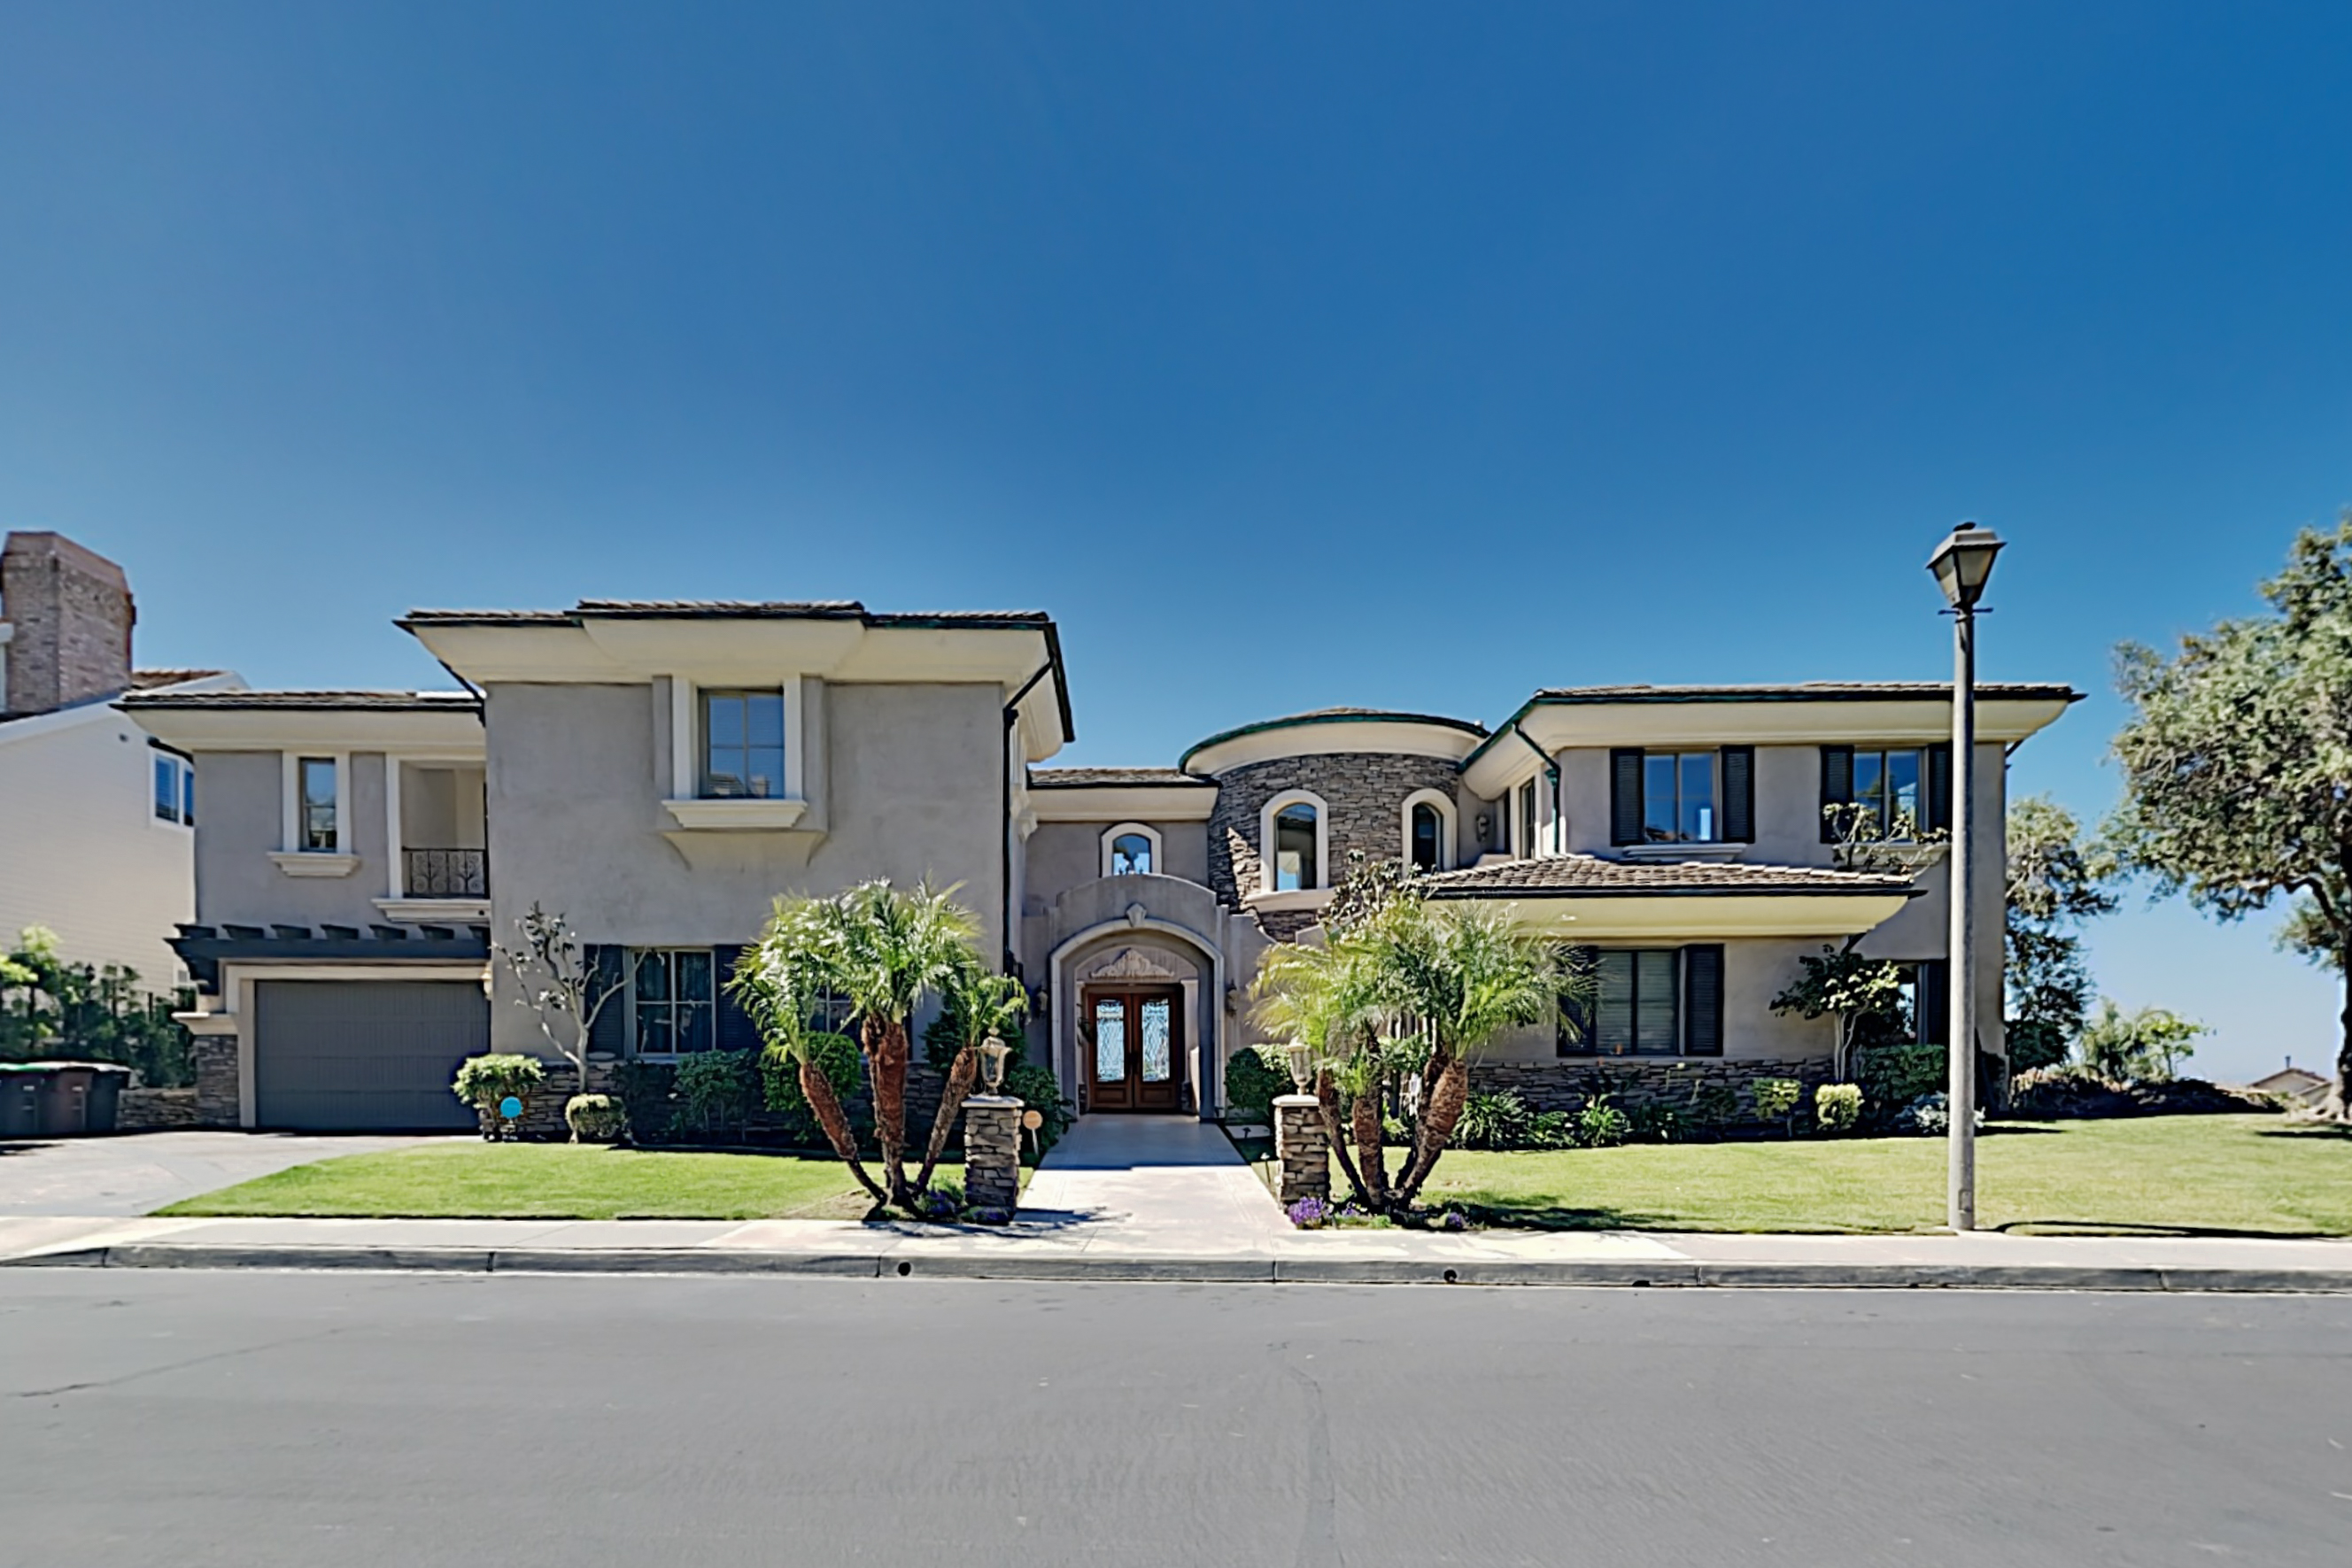 San Clemente CA Vacation Rental Welcome to San